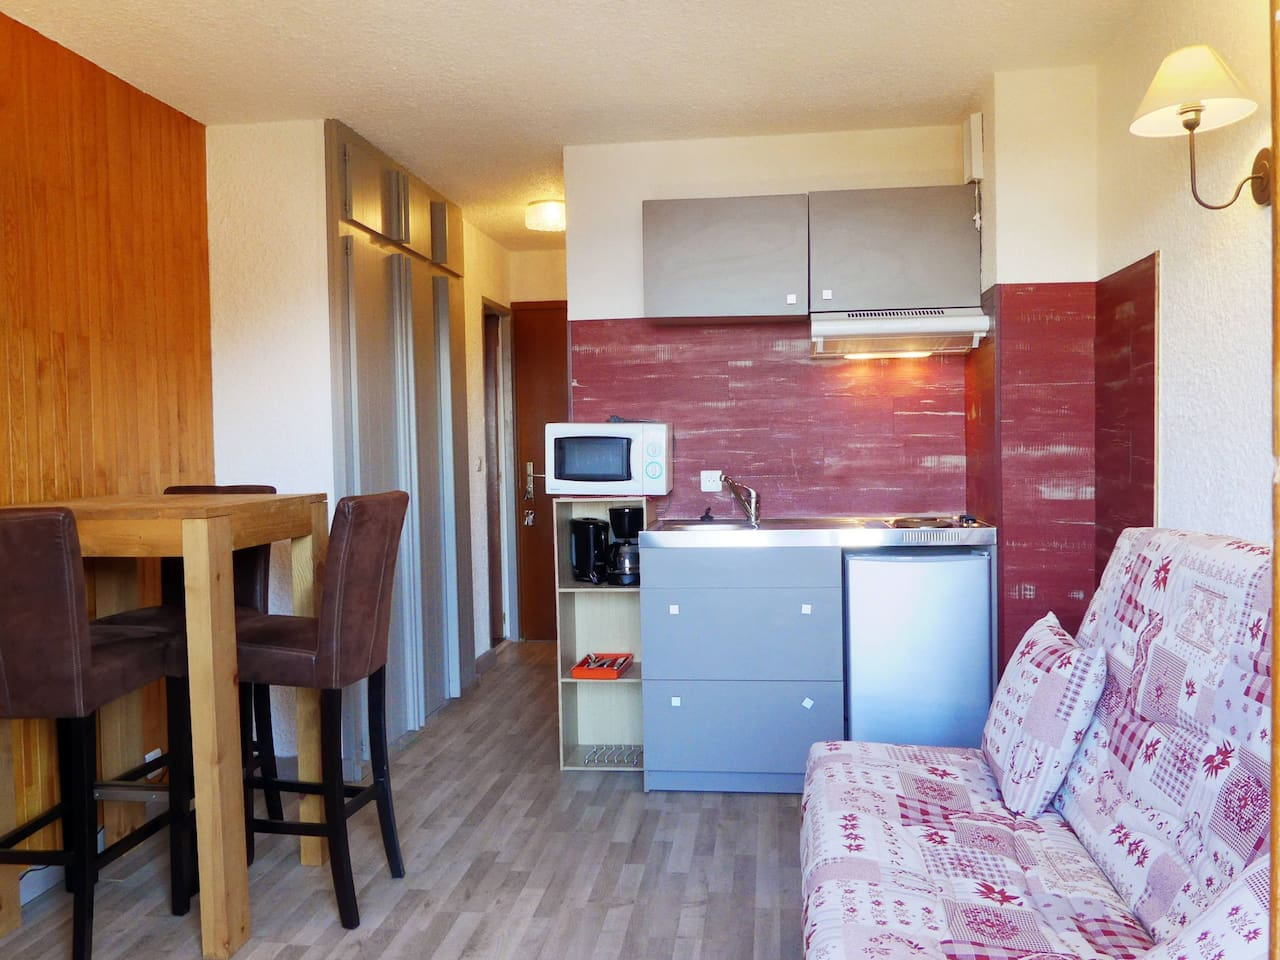 STUDIO RENOVE SITUATION IDEALE SKIS AUX PIEDS PROCHE DES COMMERCES / STUDIO IDEALLY SITUATED SKI IN & SKI OUT CLOSE TO SHOPS